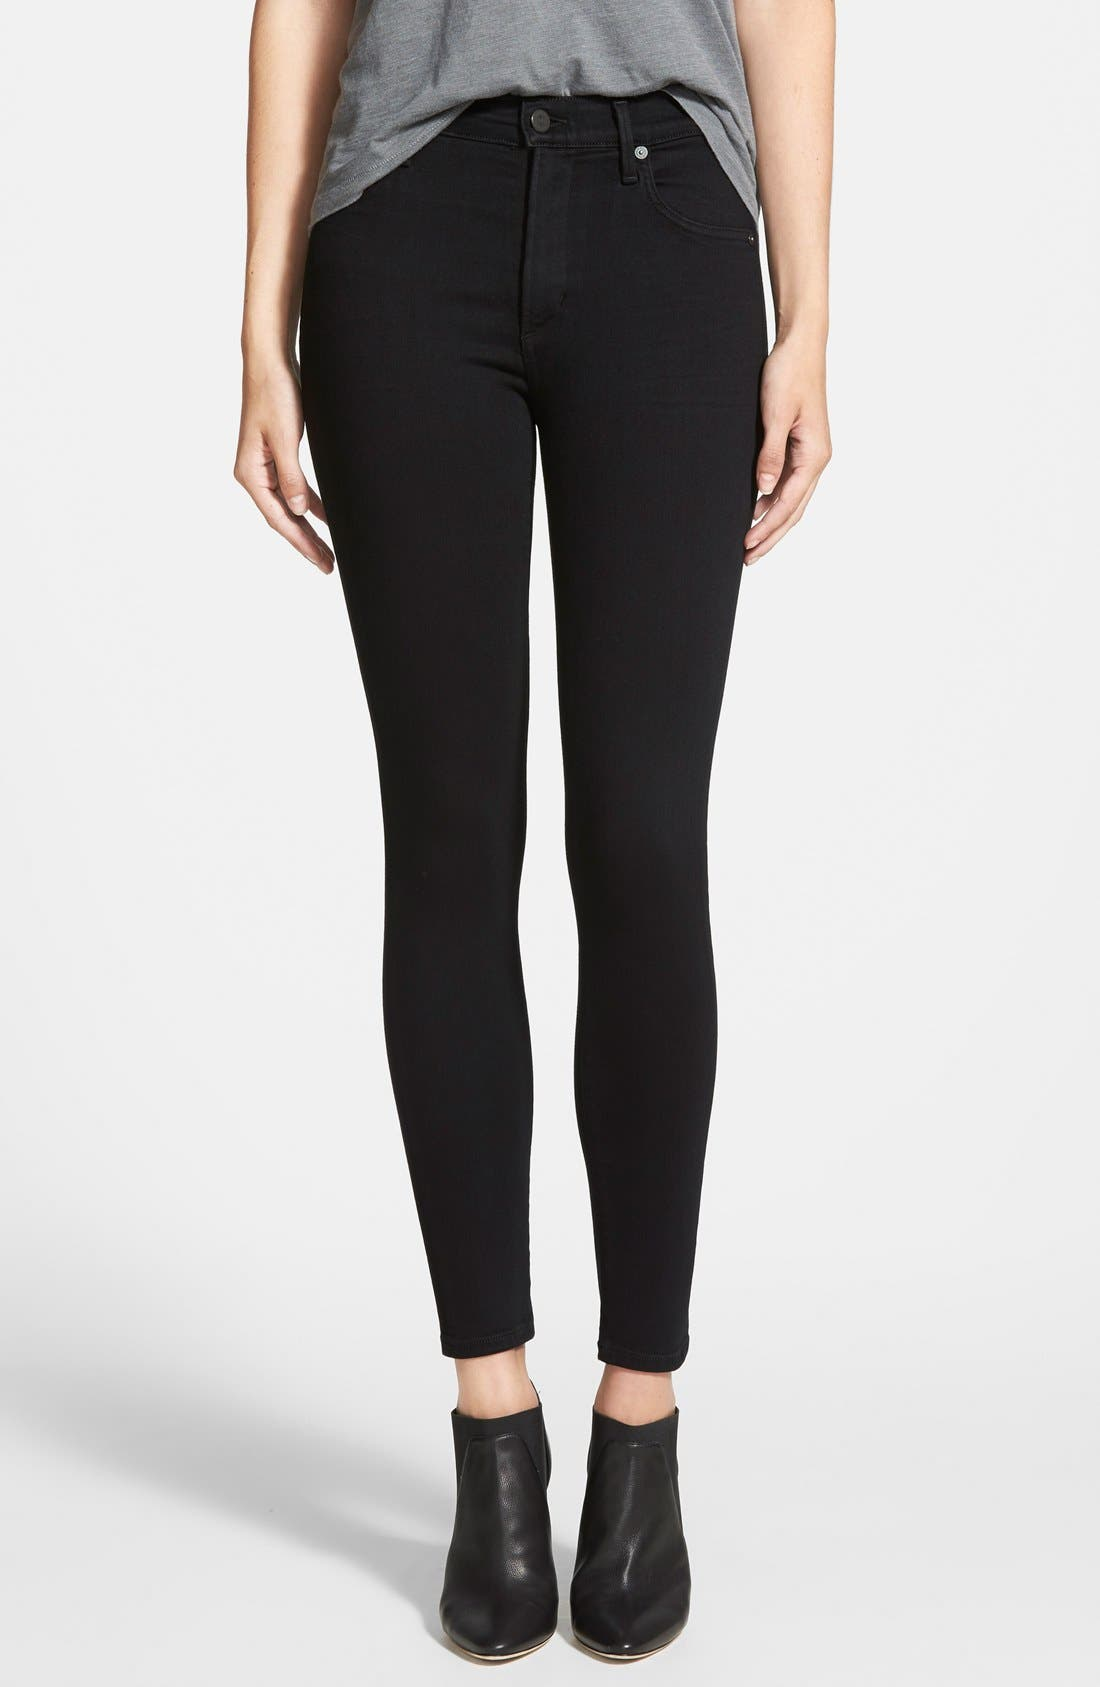 'Rocket' High Rise Skinny Jeans,                             Main thumbnail 1, color,